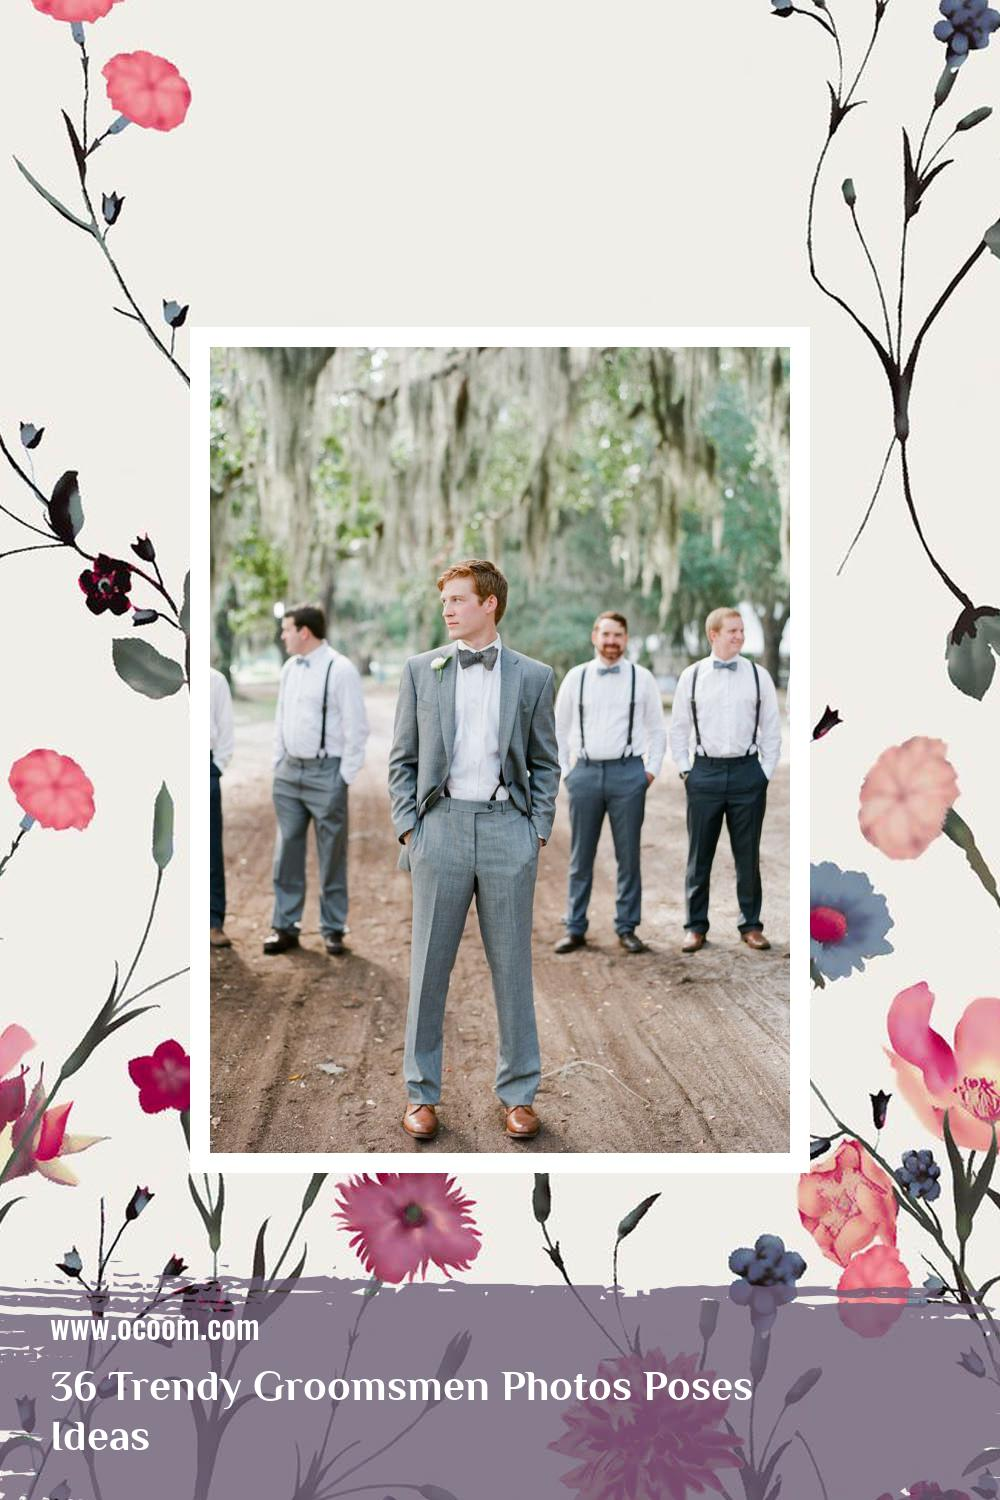 36 Trendy Groomsmen Photos Poses Ideas 34